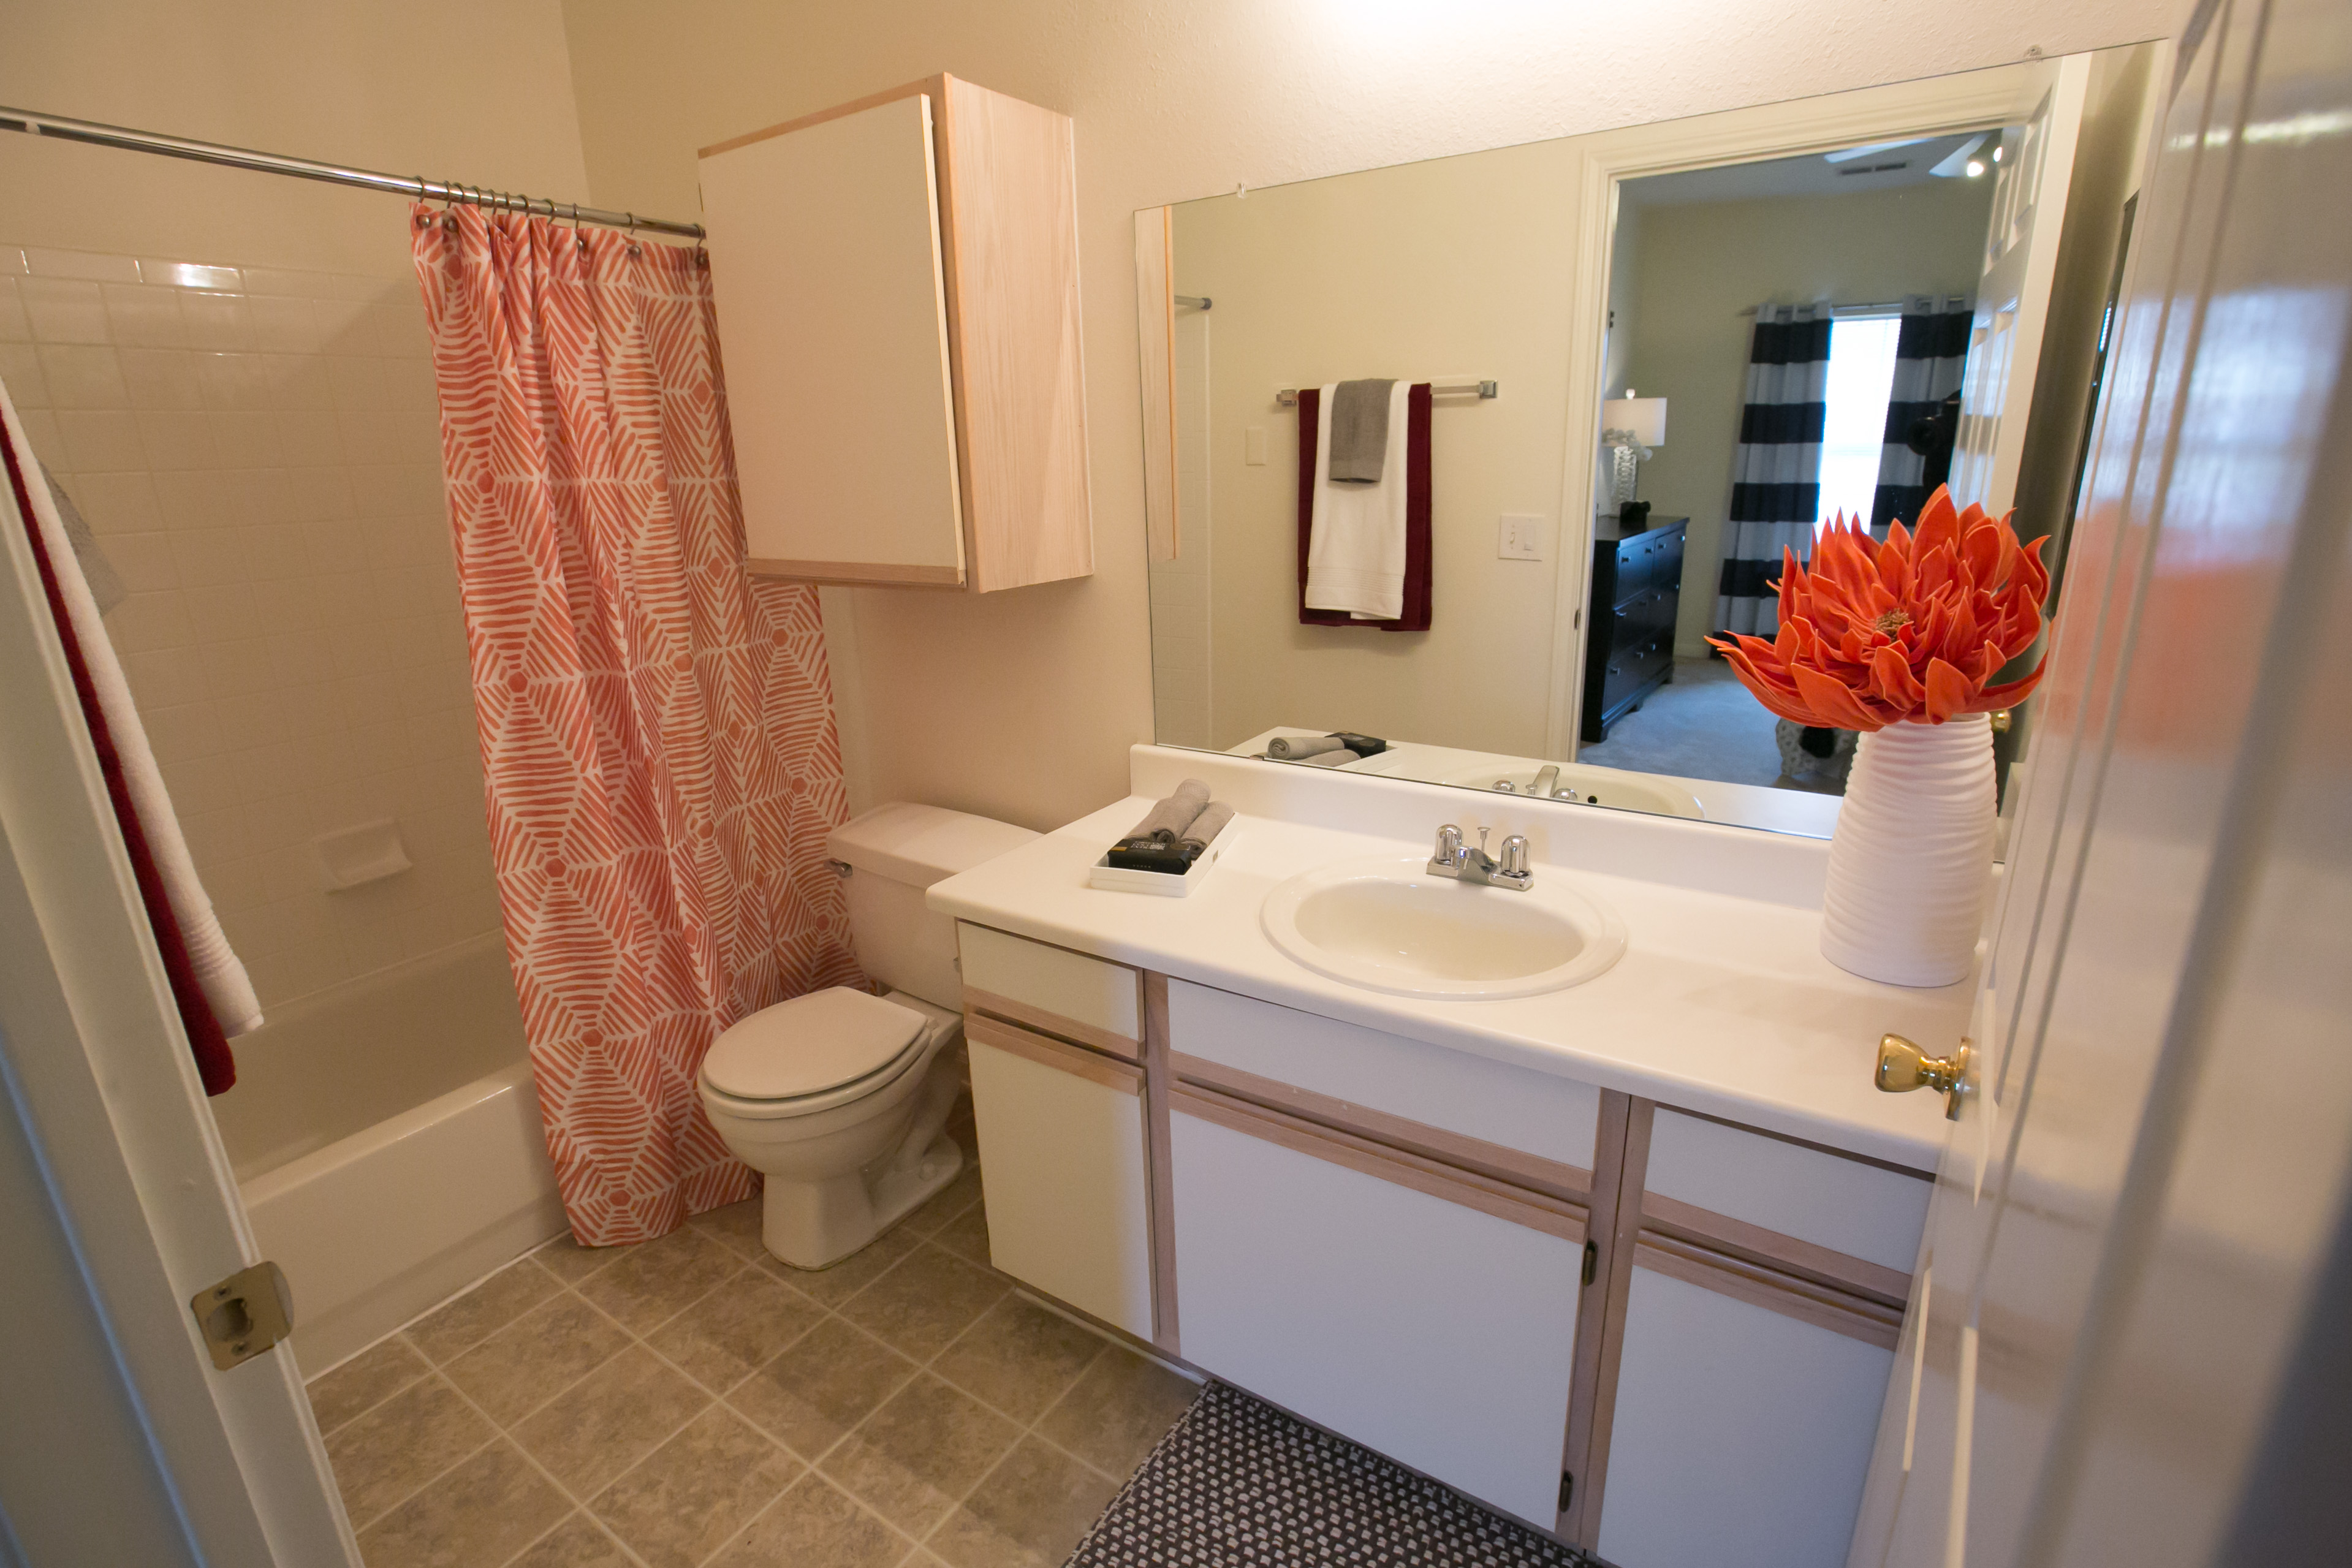 Http Www Centerpointapts Com Indianapolis Center Point Apartment Homes